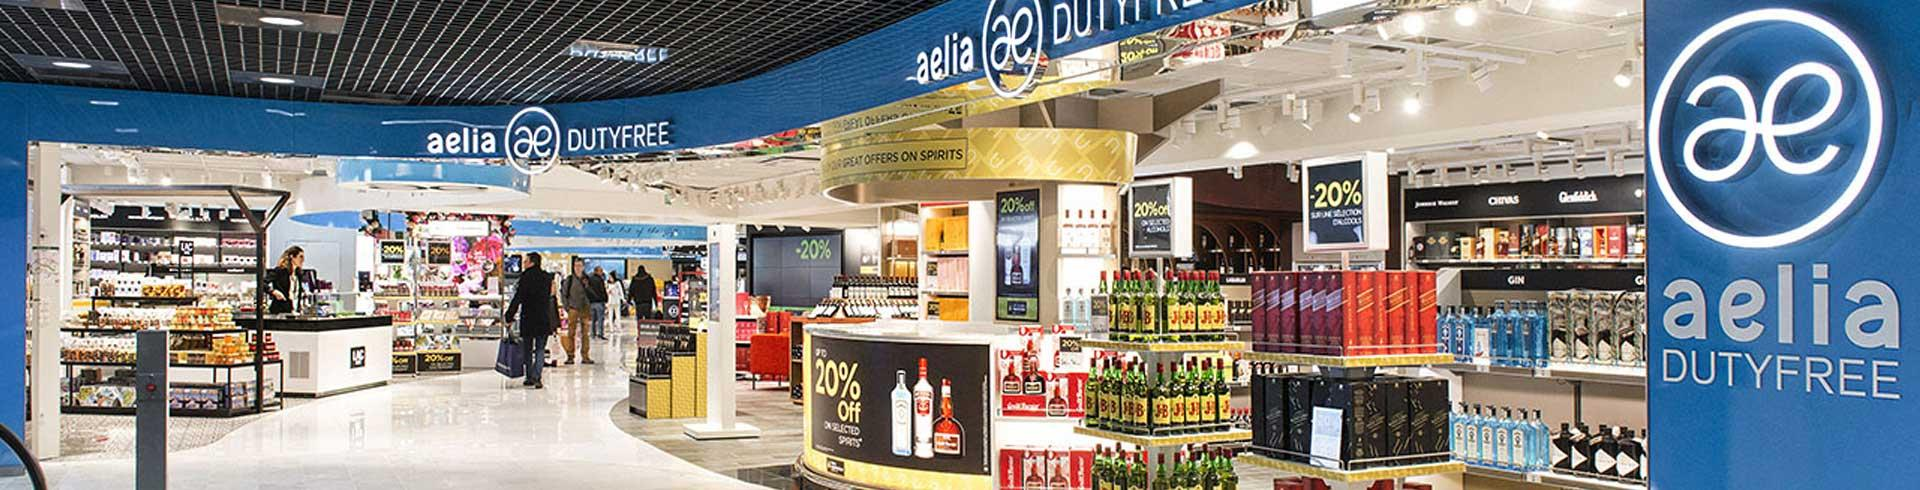 Become a millionaire with AELIA DUTY FREE  From 3 July to 28 August 2018, head to the AELIA DUTY FREE shops in your airport.